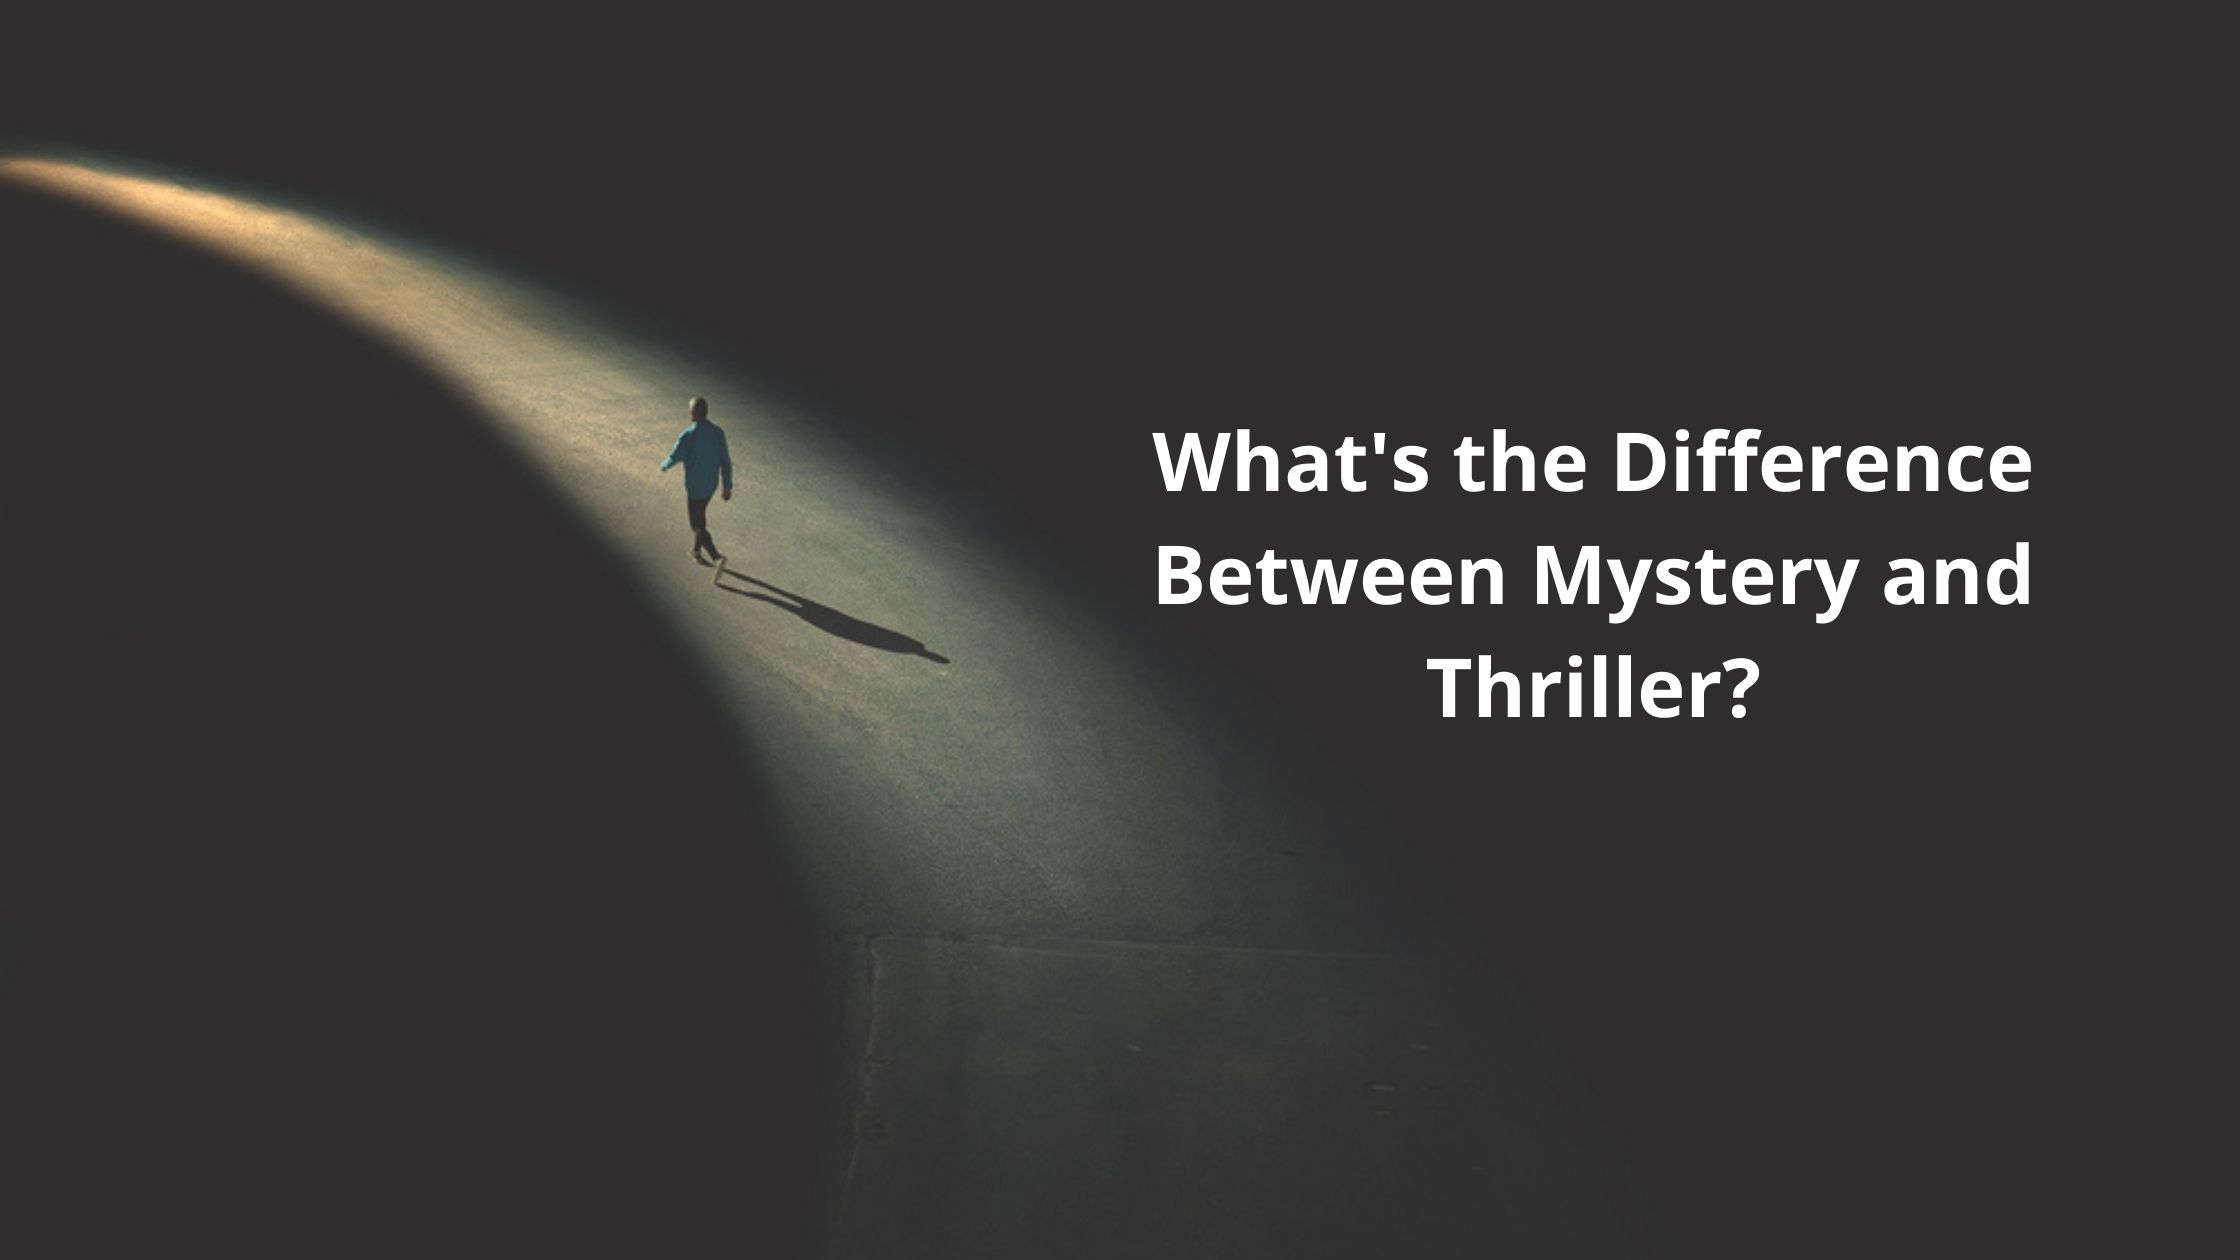 What's the difference between mystery and thriller